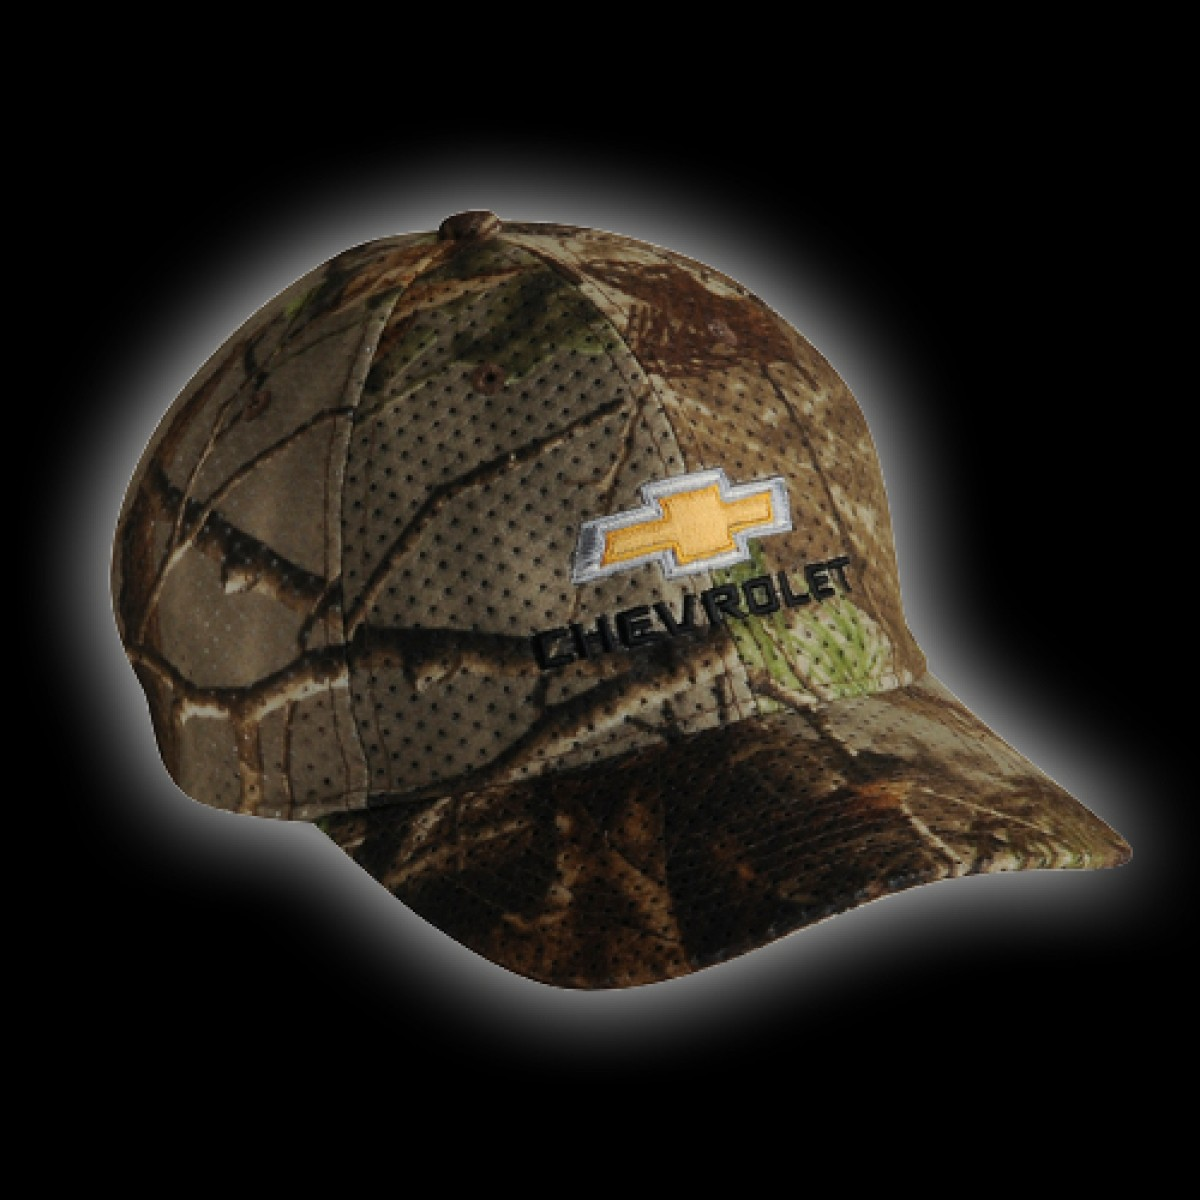 Hossrods Com Chevrolet Realtree Camouflage Hat Hot Rod Accessories Garage Gear And More